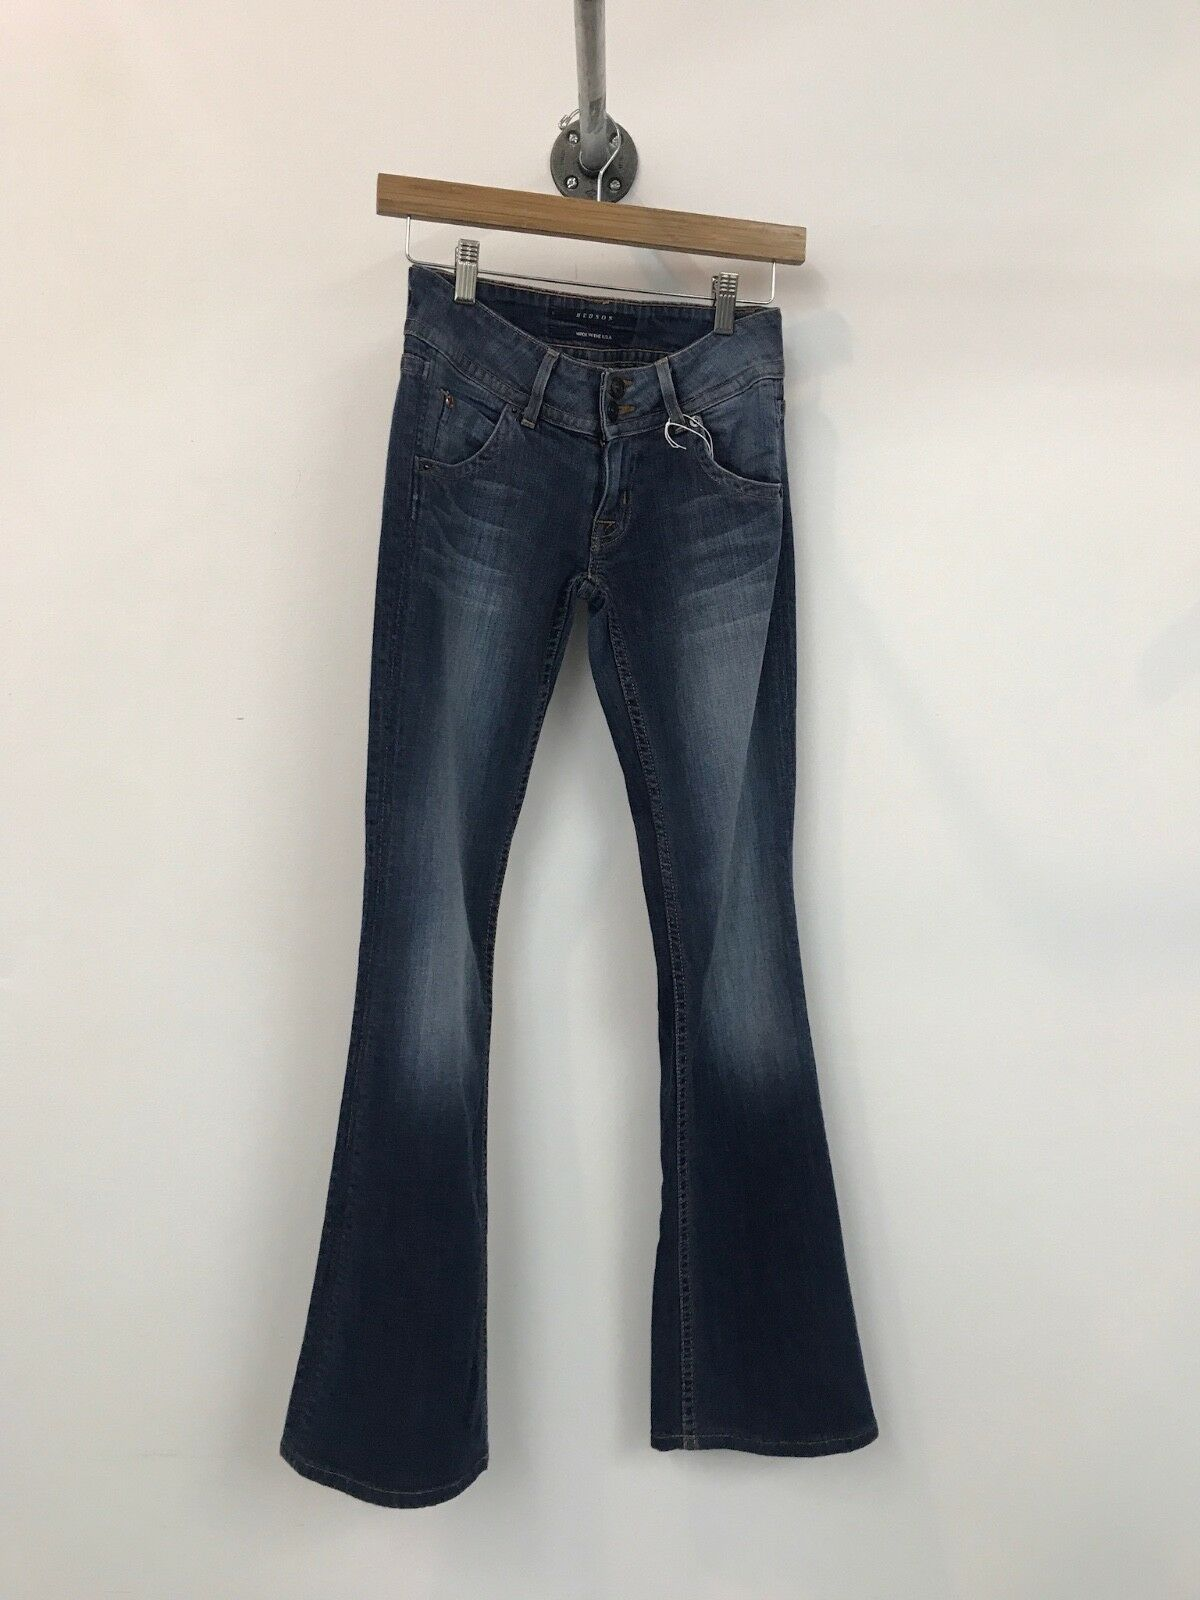 HUDSON SIGNATURE TRIANGLE FLAP FLARE STRETCH LOW DENIM WOMENS JEANS, Size 24